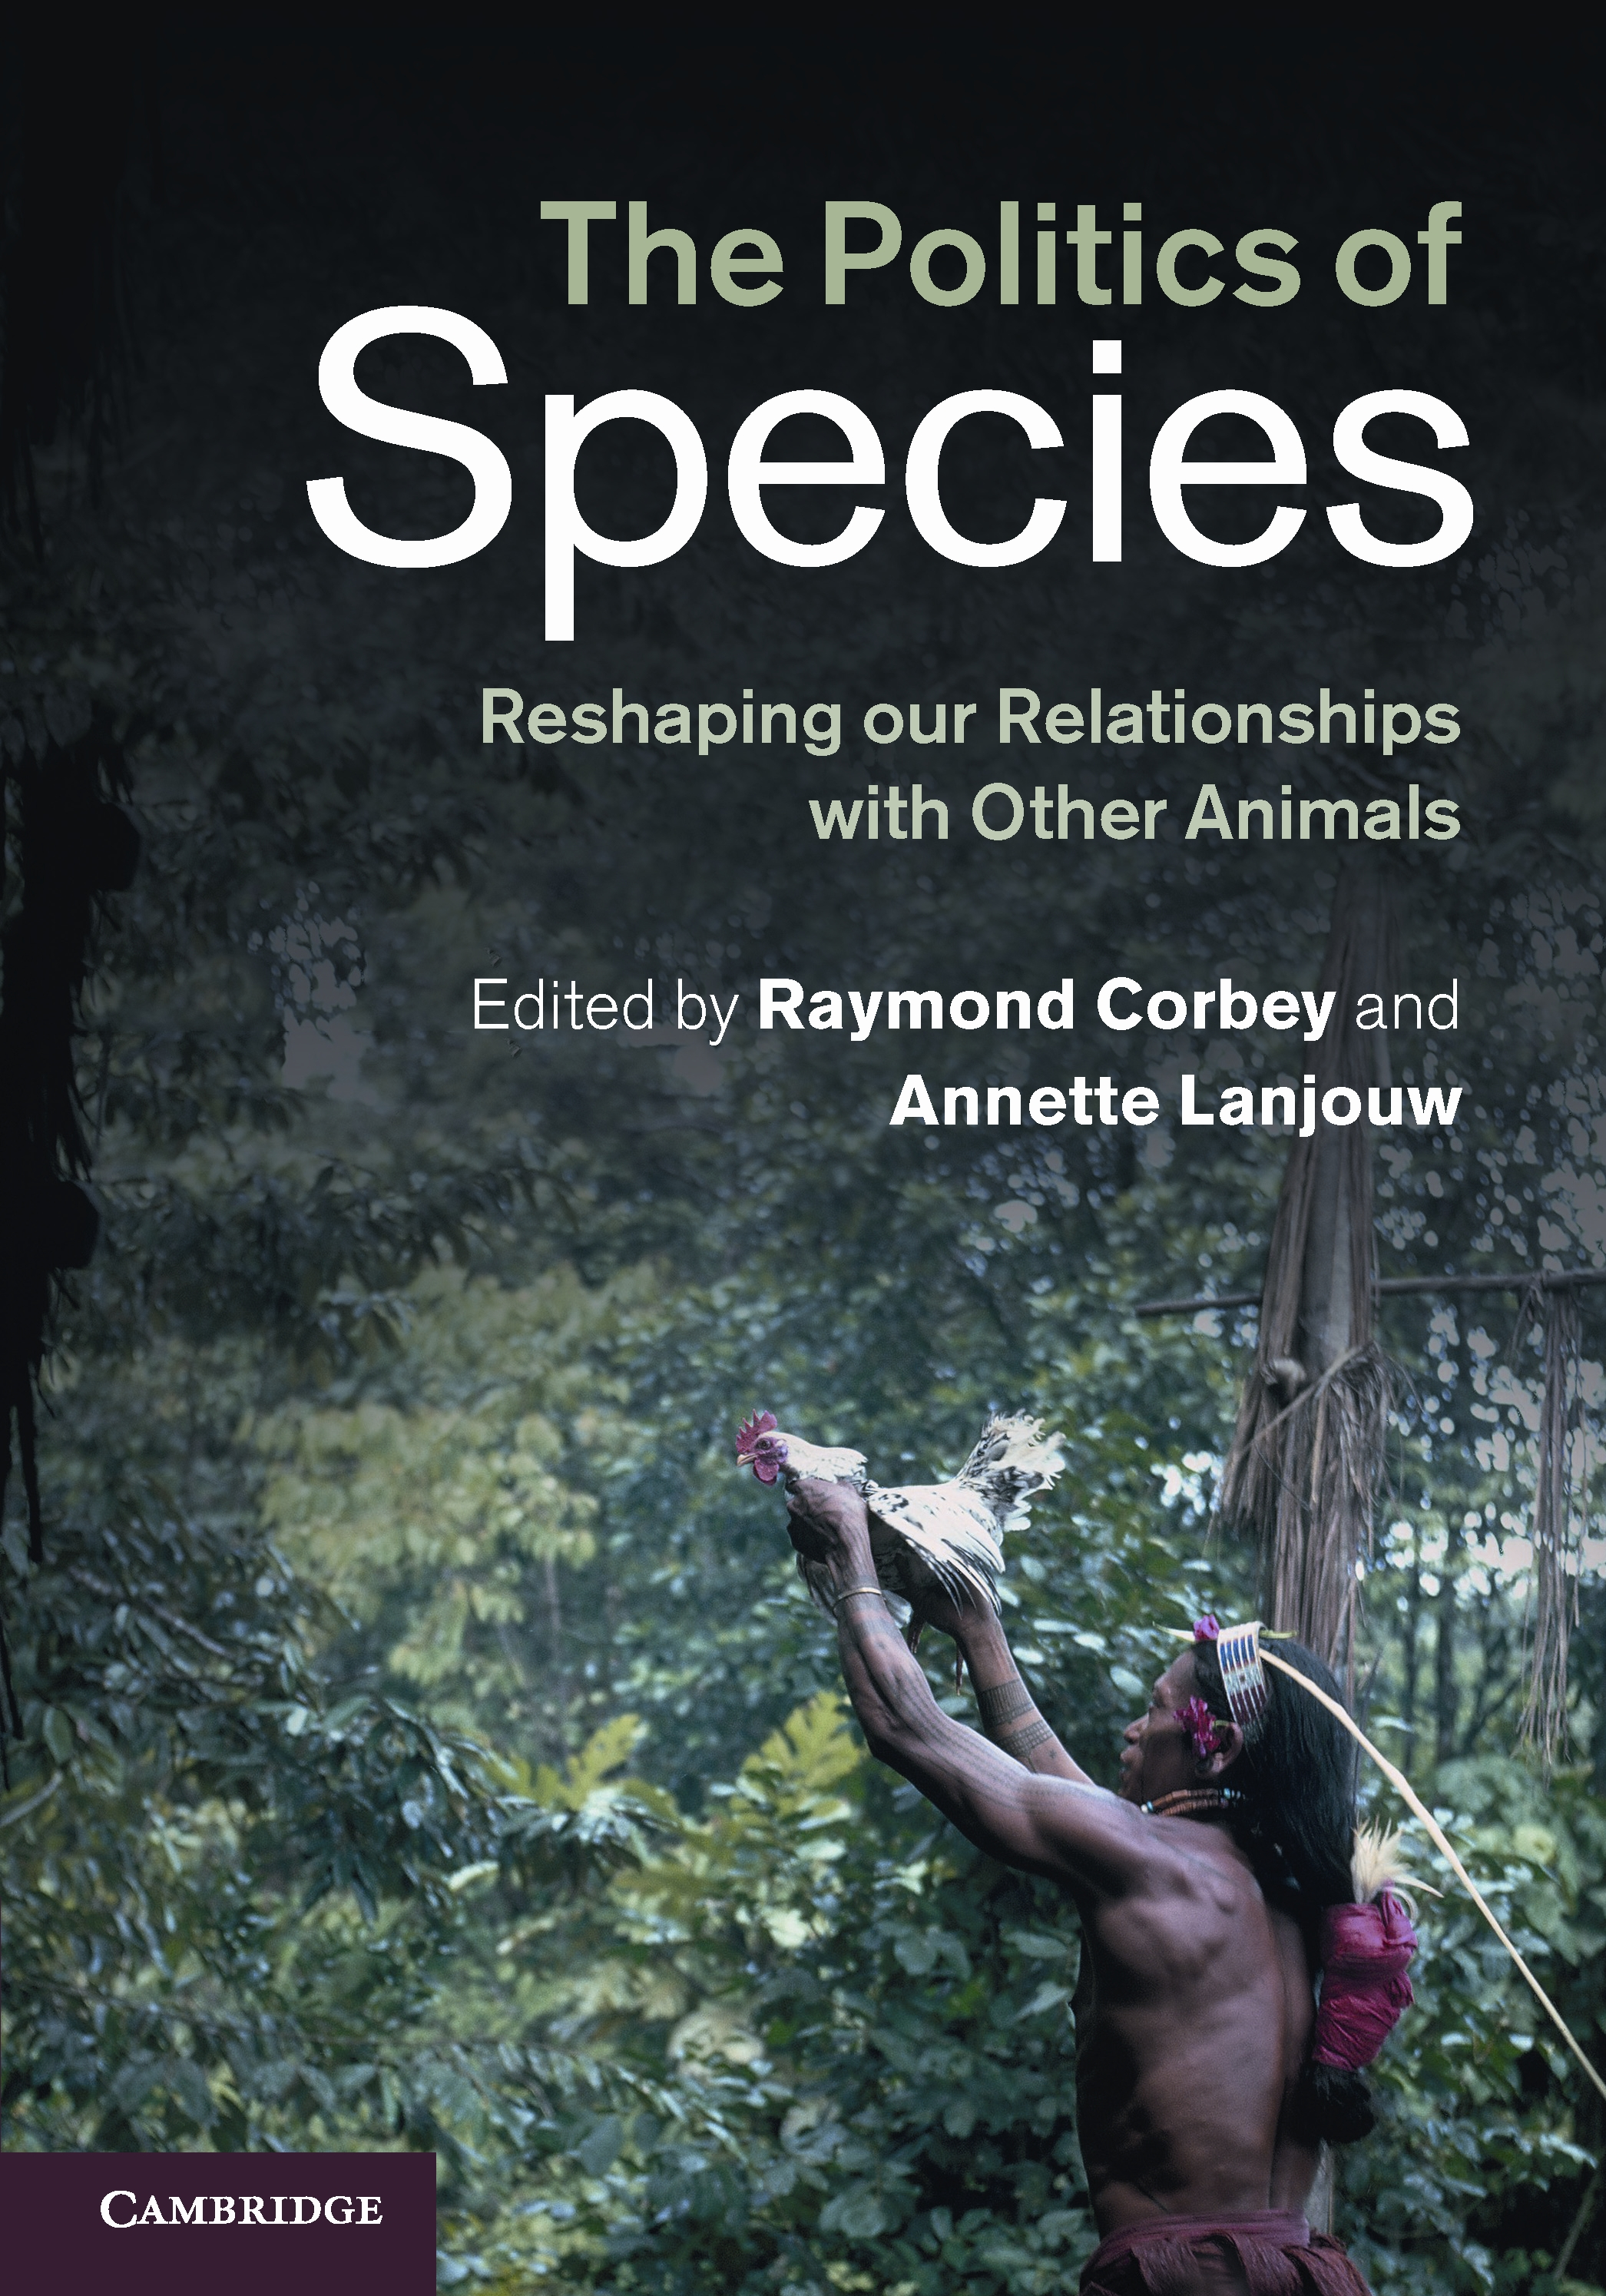 The Politics of Species Reshaping our Relationships with Other Animals